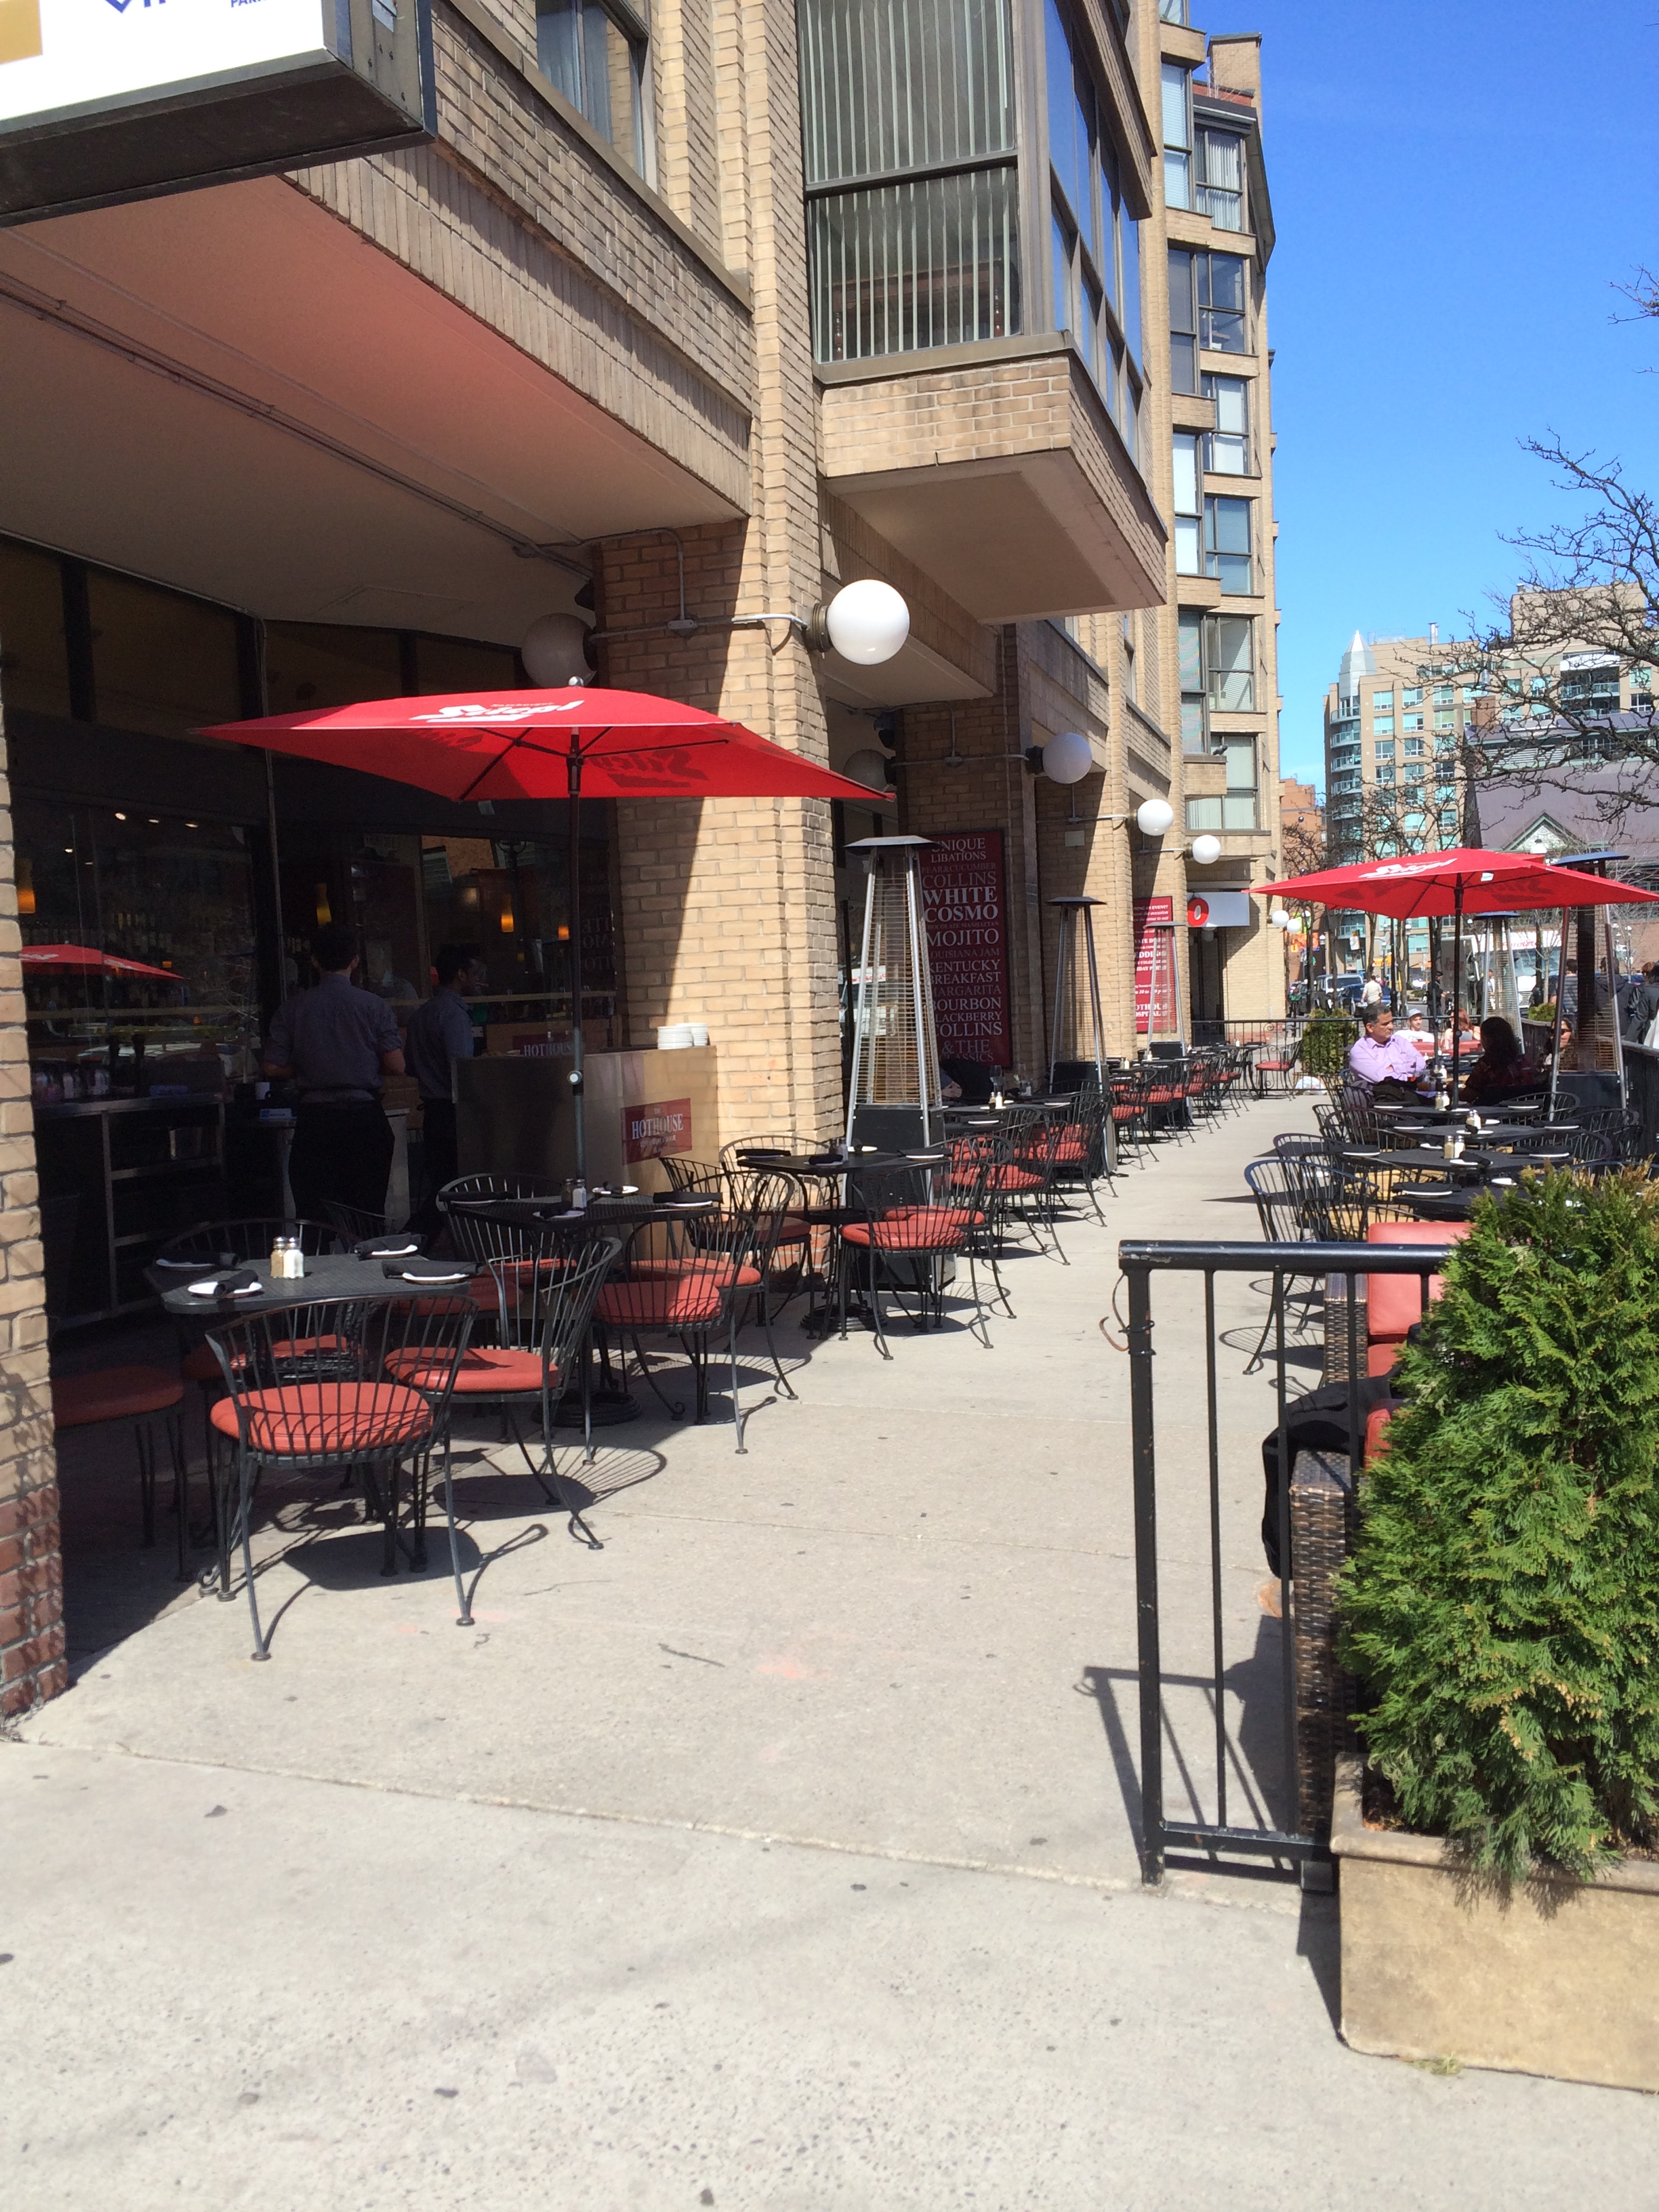 Picture of accessible patio. Red umbrellas.